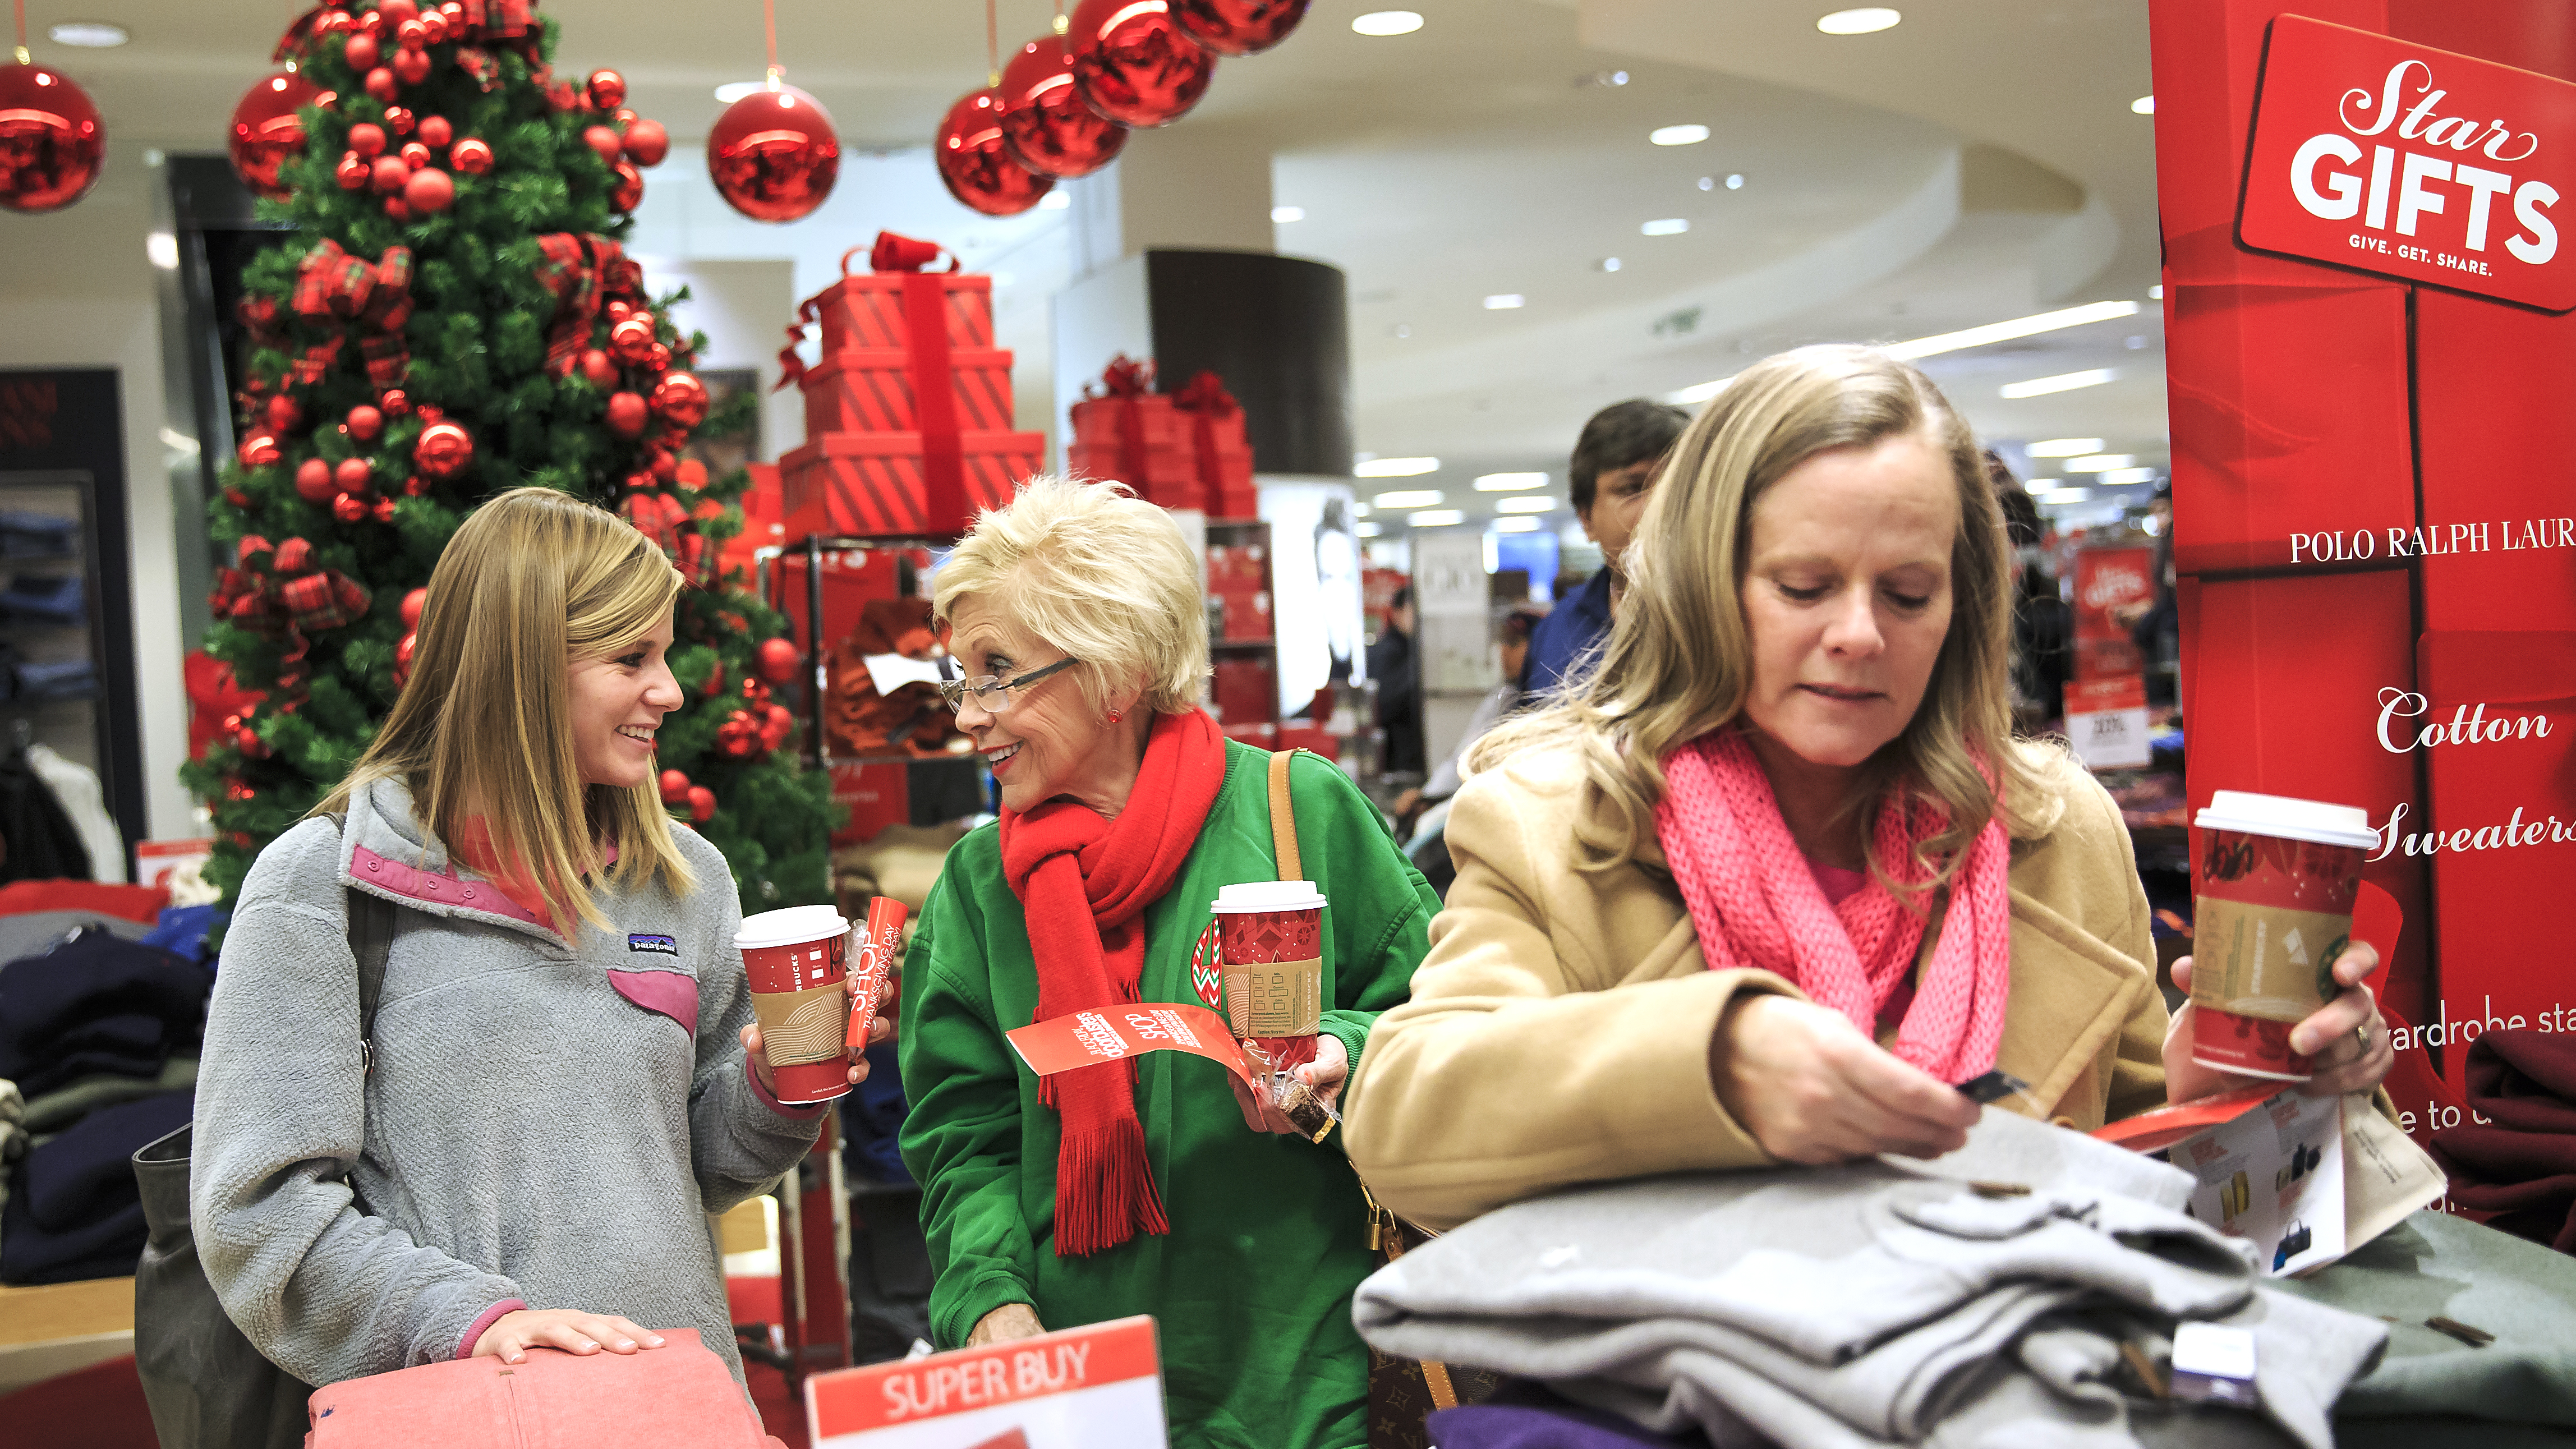 Jessica Gaddy reacts with Wanda Kemp as they shop during the Macy's Lenox Black Friday store opening on Thursday, November 28, 2013 in Atlanta.